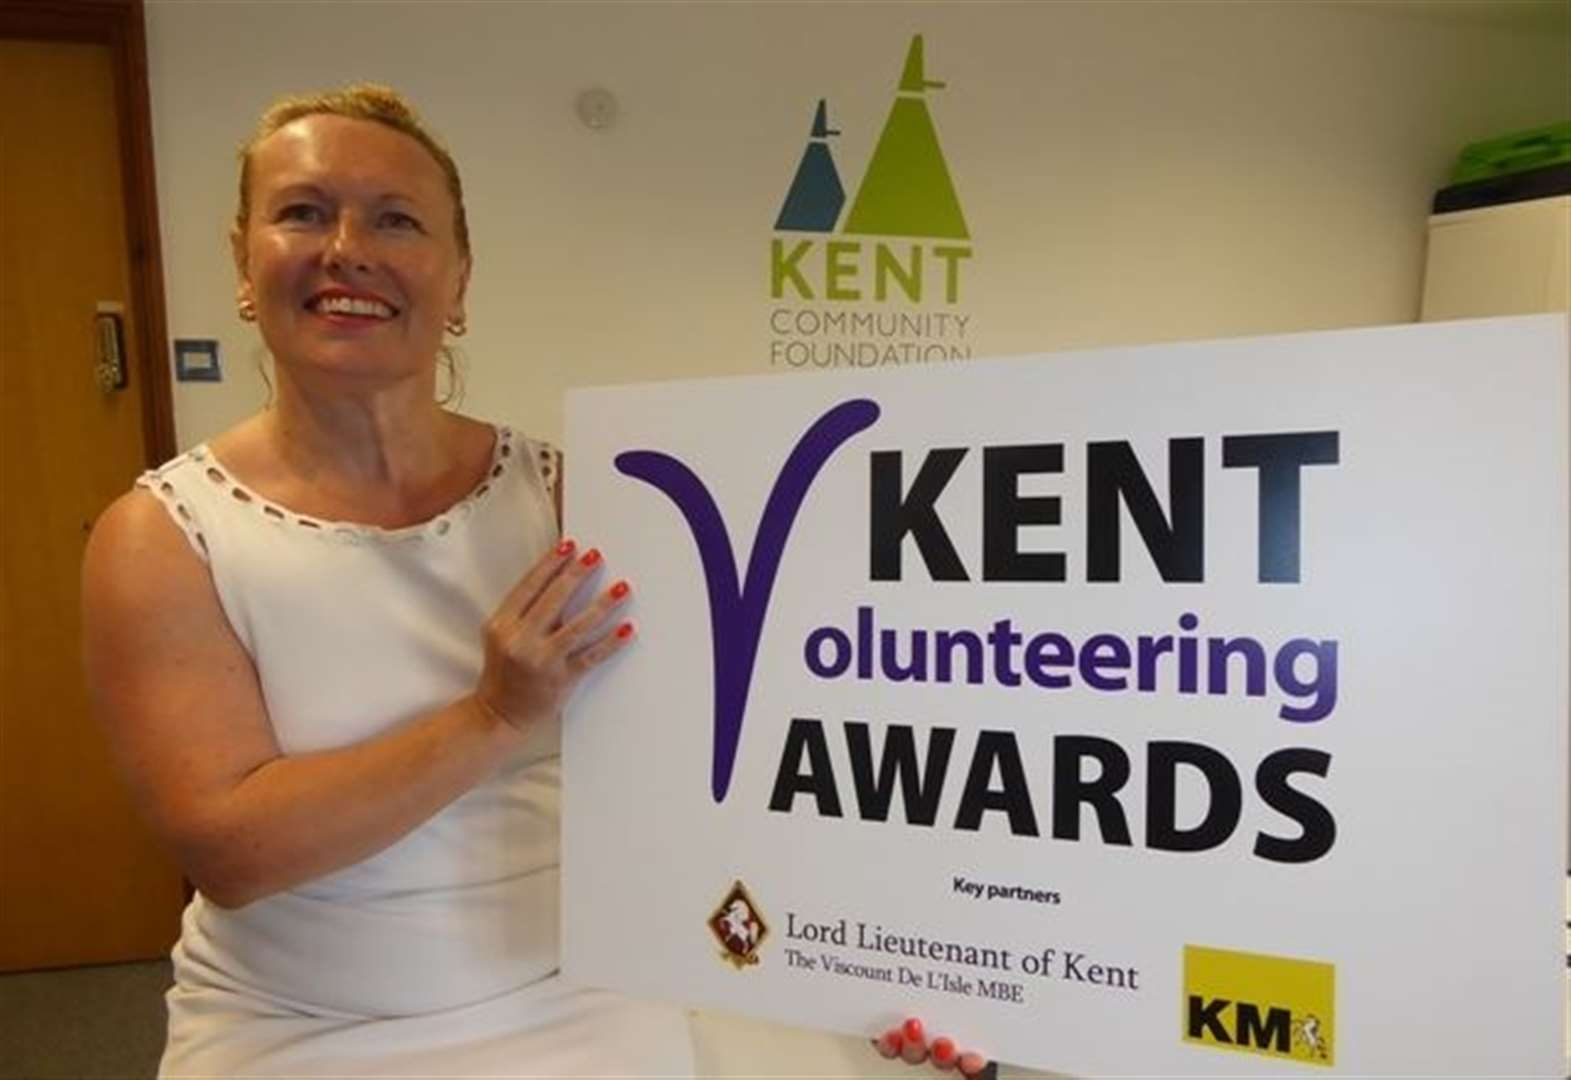 Volunteering awards not just for charities